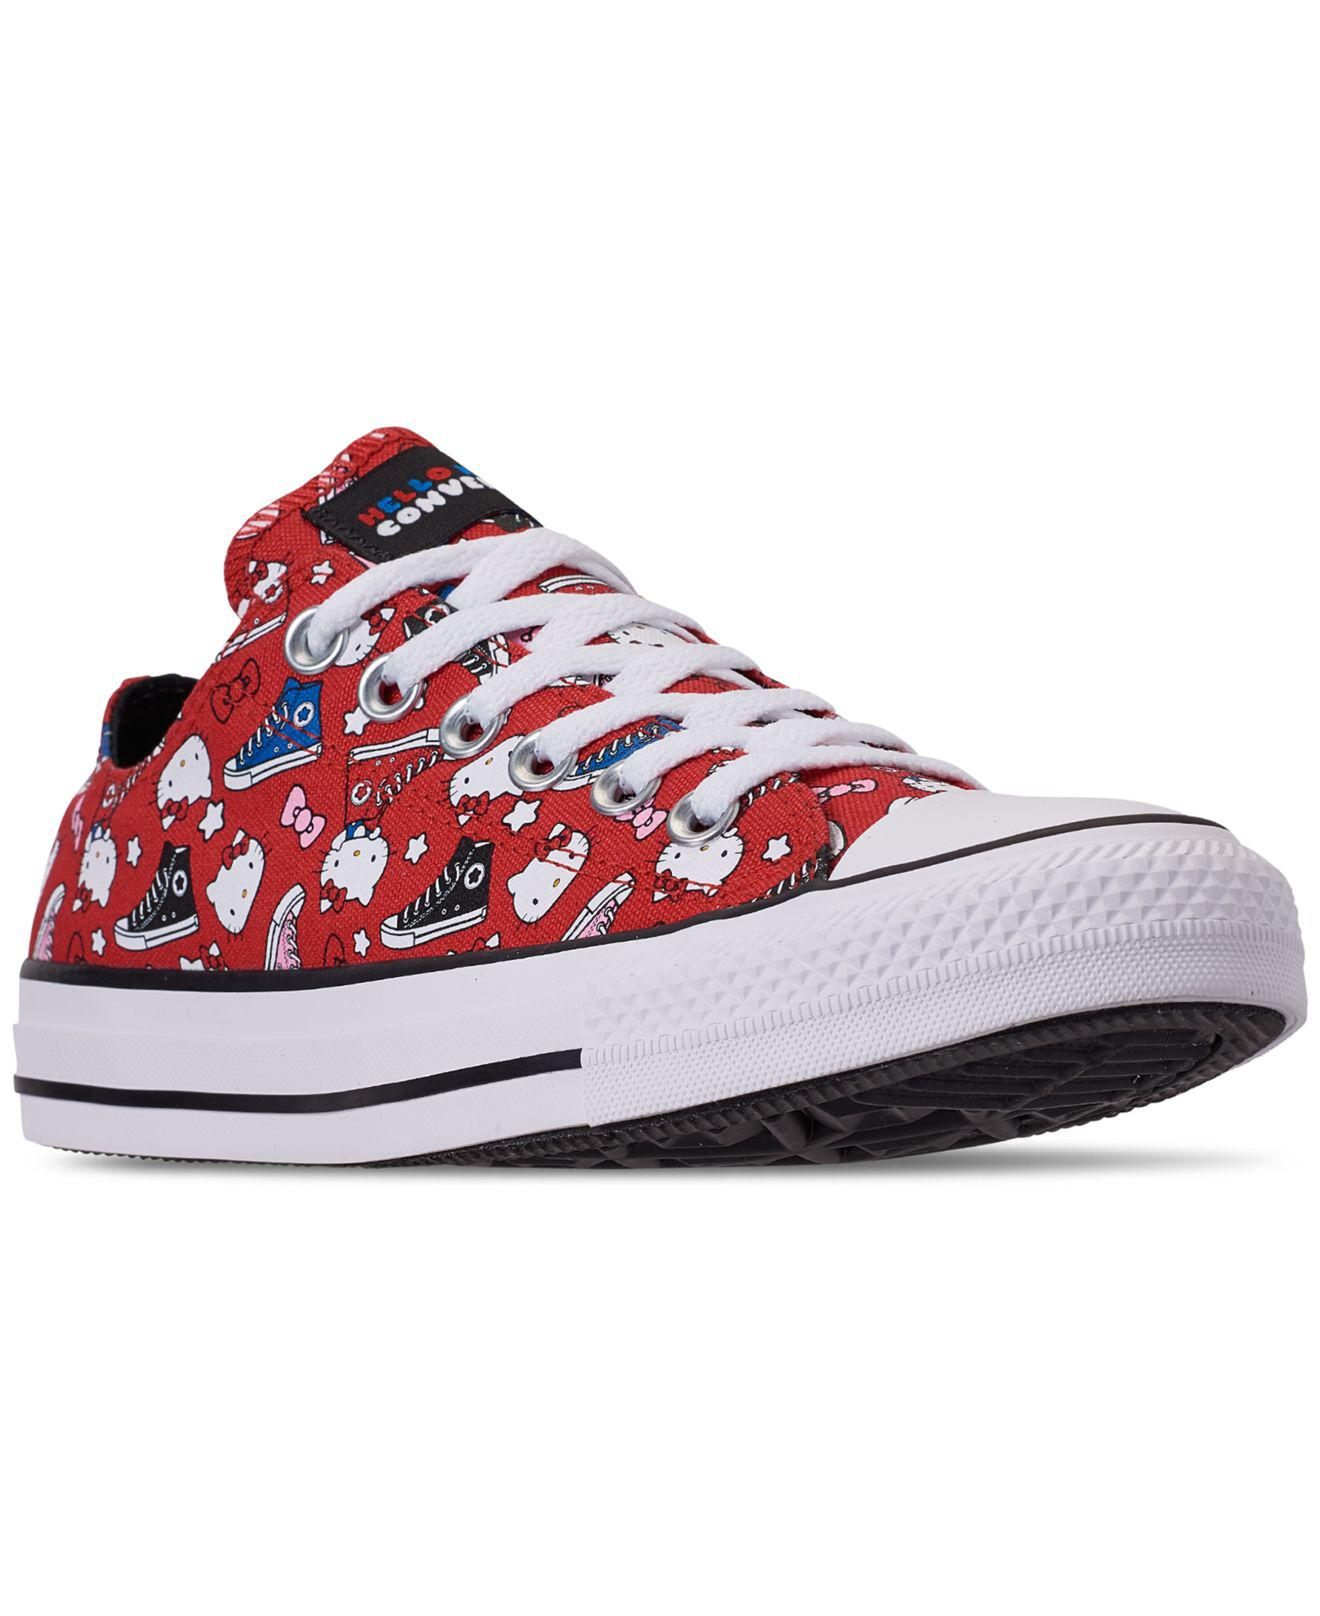 385244982273 Lyst - Converse X Hello Kitty Chuck Taylor Ox Red All Over Print ...